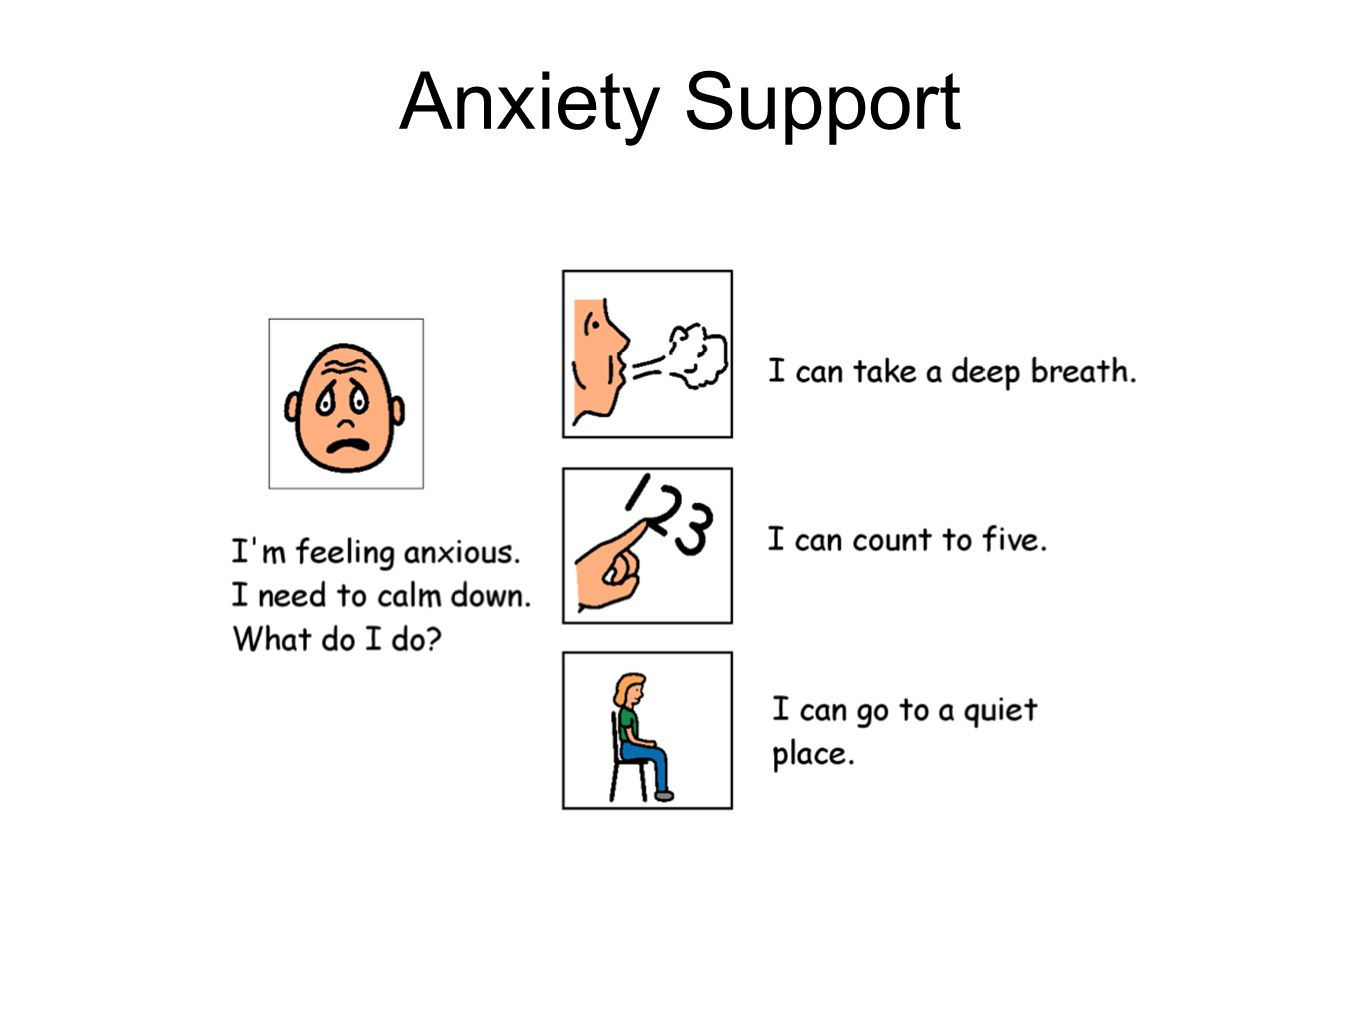 Anxiety Support